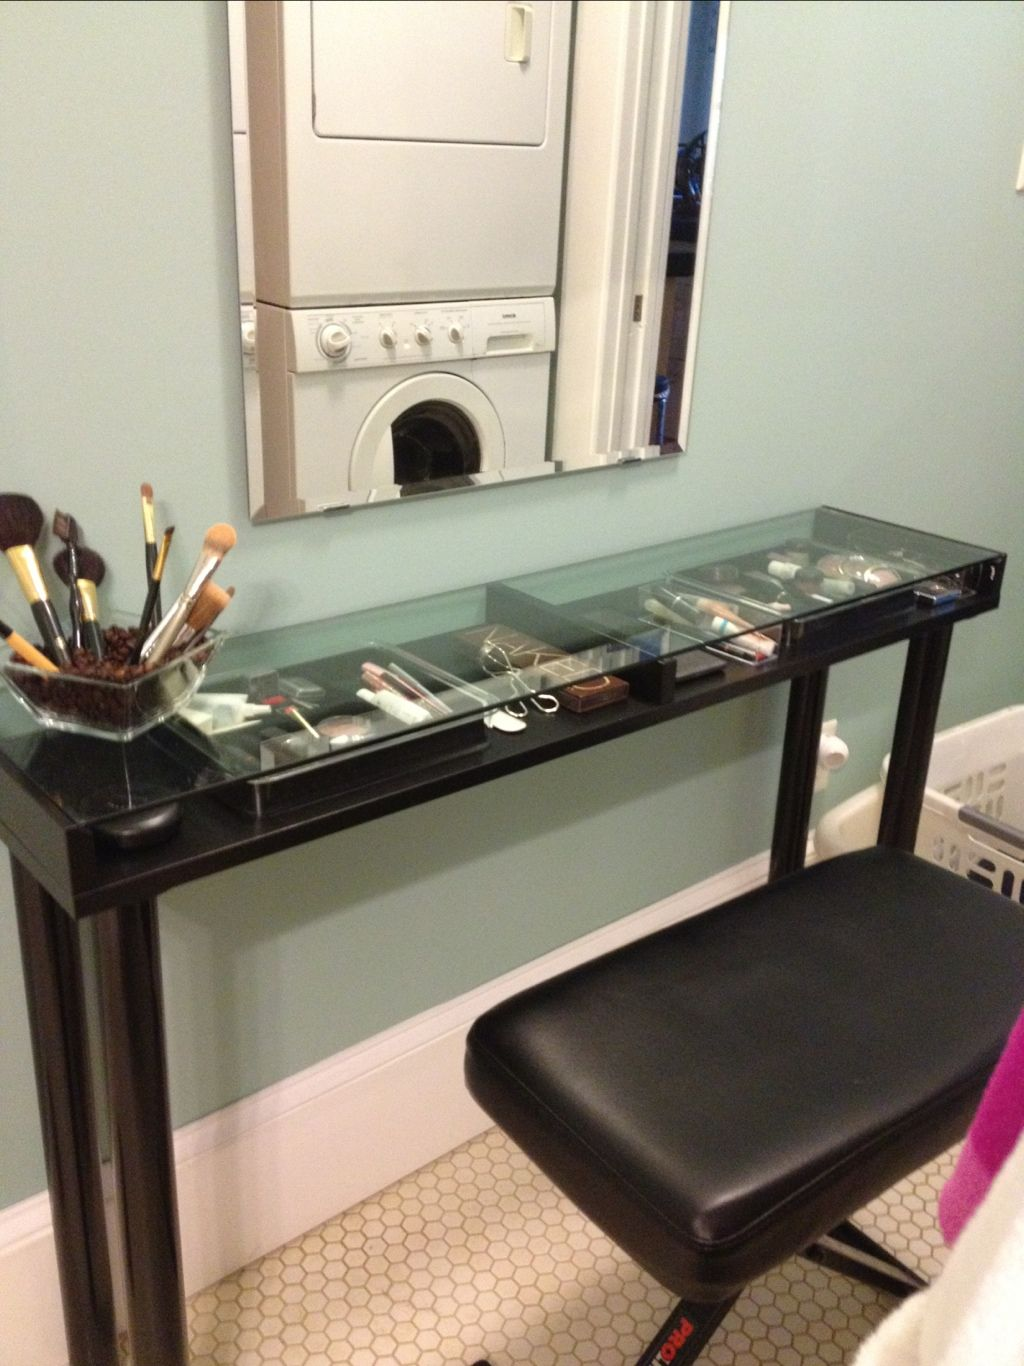 But with baskets ikea makeup vanity home inspiration pinterest